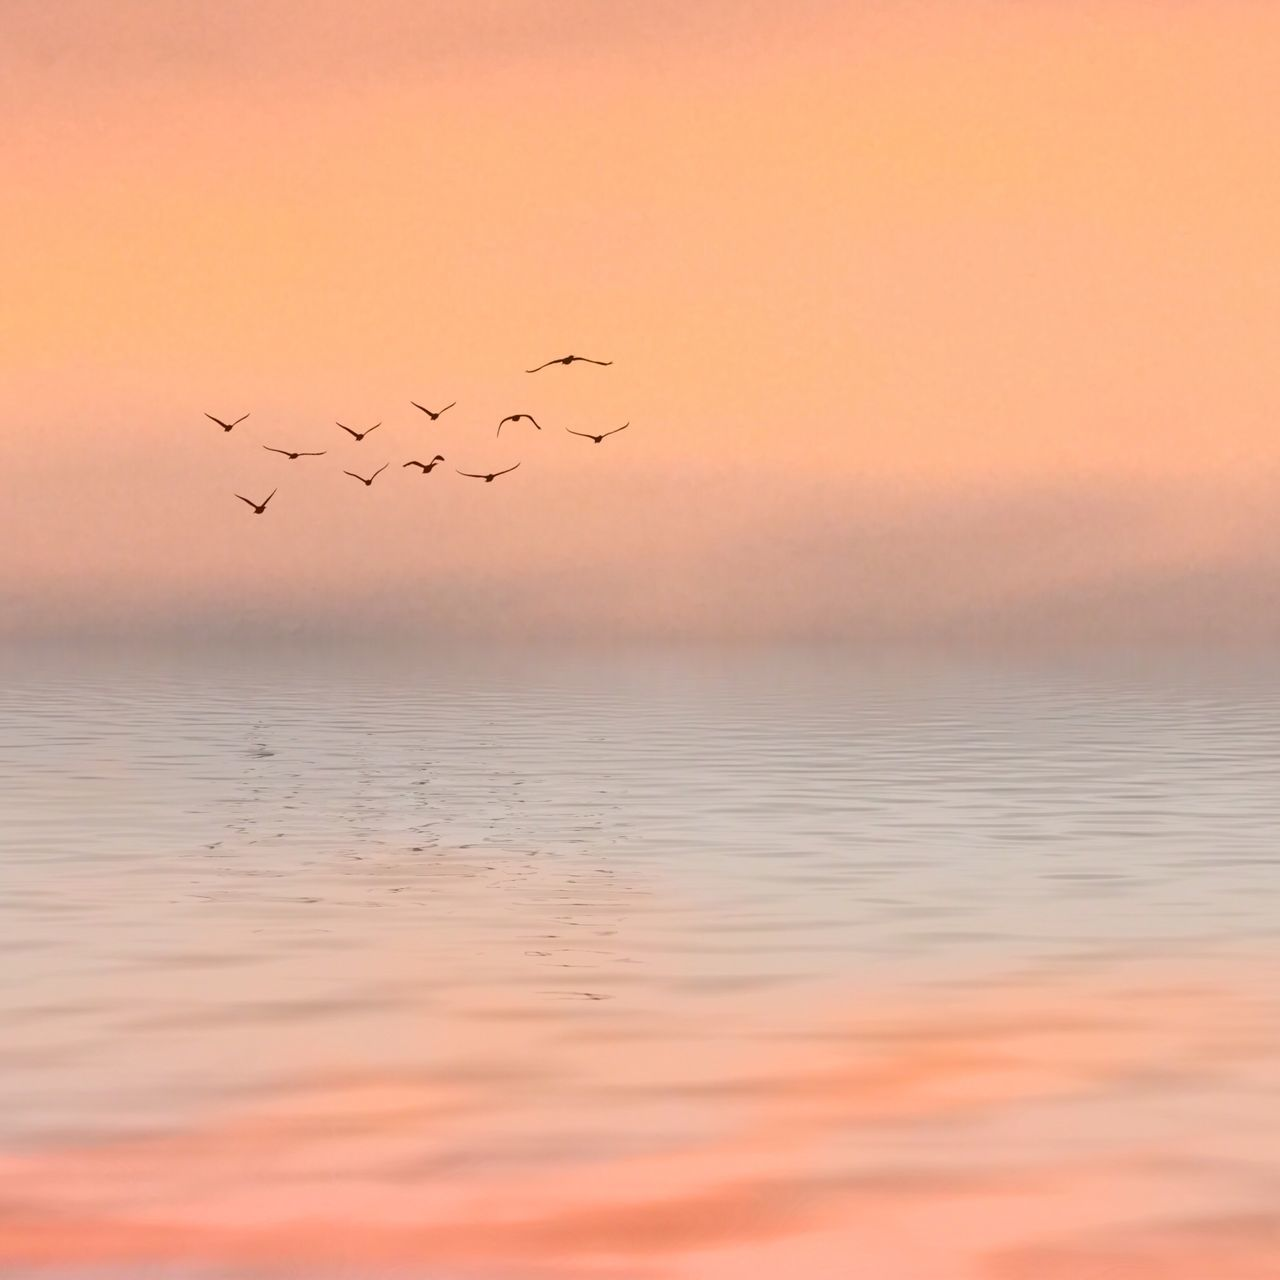 Tranquil Scene Pastel Power Pastel Colors Tranquilo (: Tranquil Ocean Horizon Over Water Daylight Birds Landscape Landscape_Collection Landscape_photography Beautifully Organized